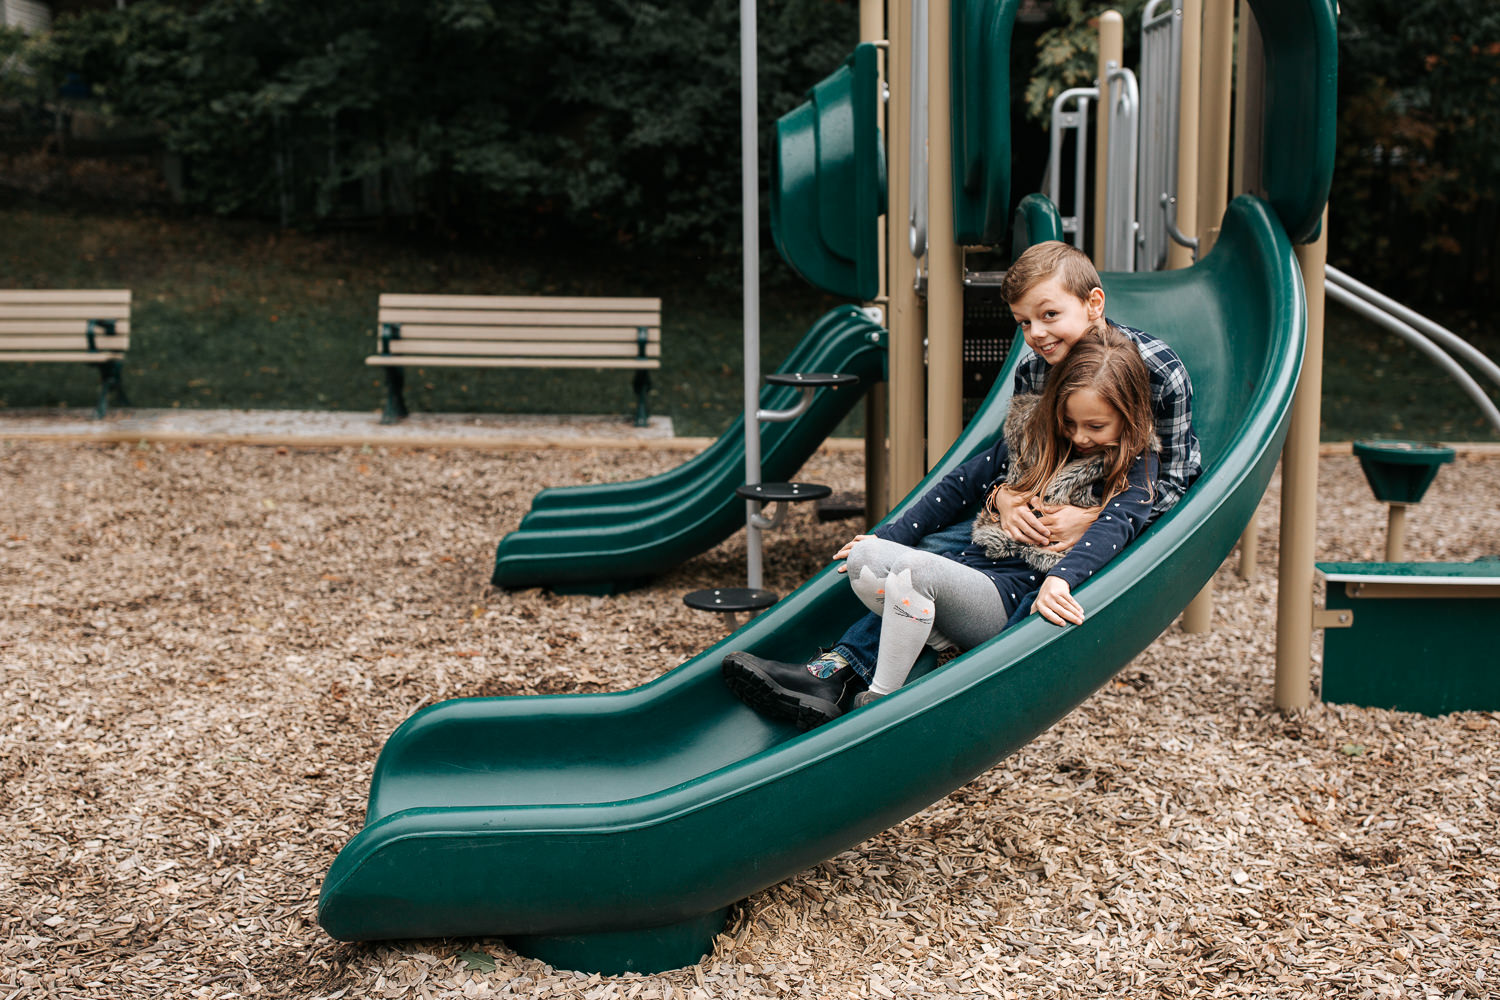 7 year old girl and 9 year old boy going down park slide, big brother sitting behind sister as they slide down - Barrie Lifestyle Photos